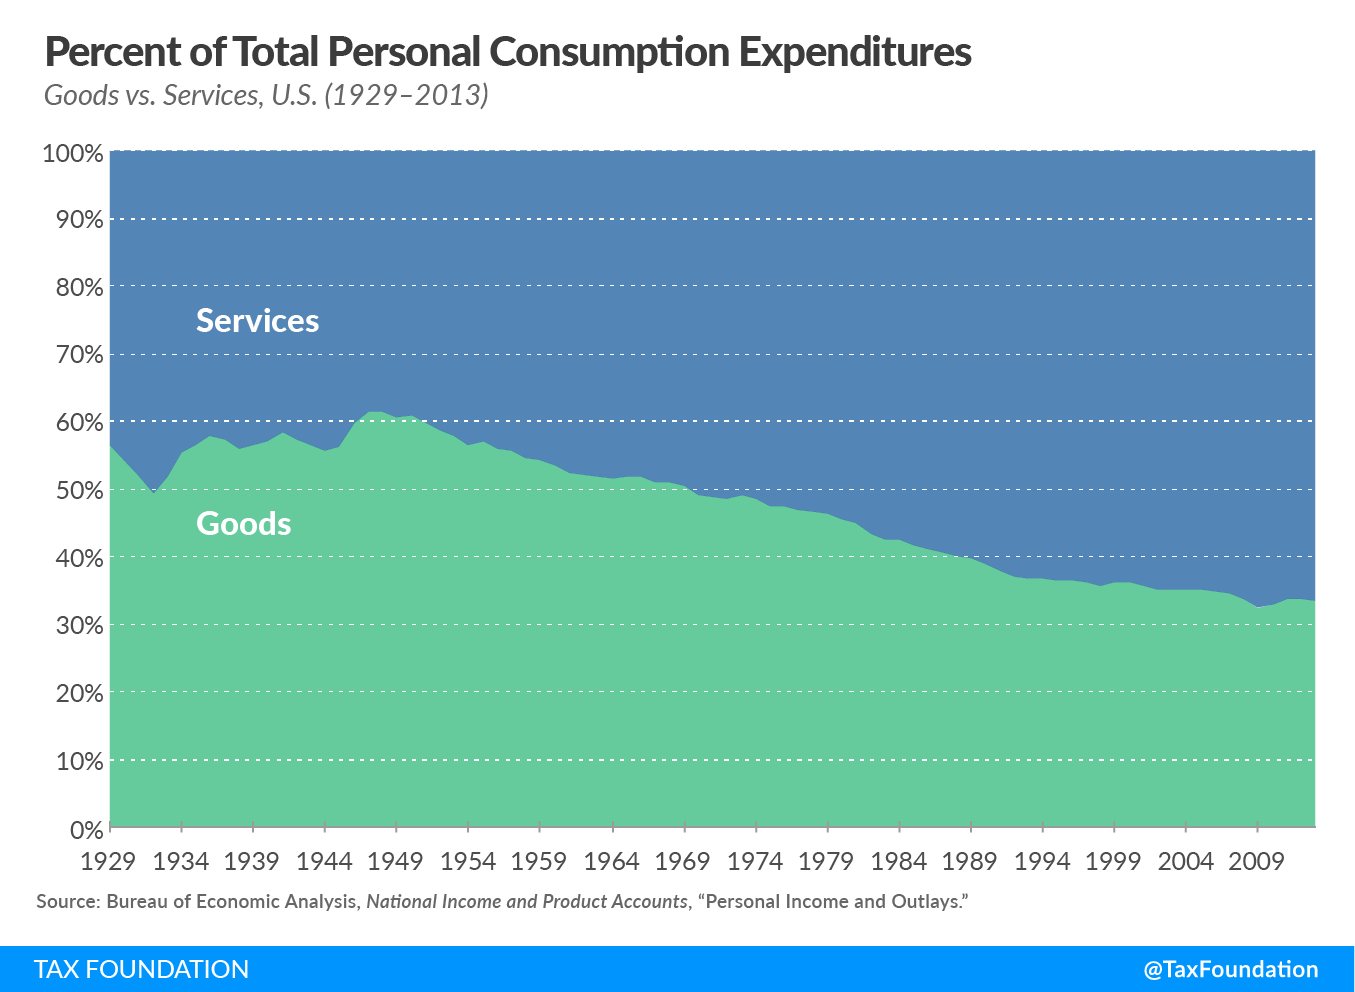 Percent total personal consumption expenditures